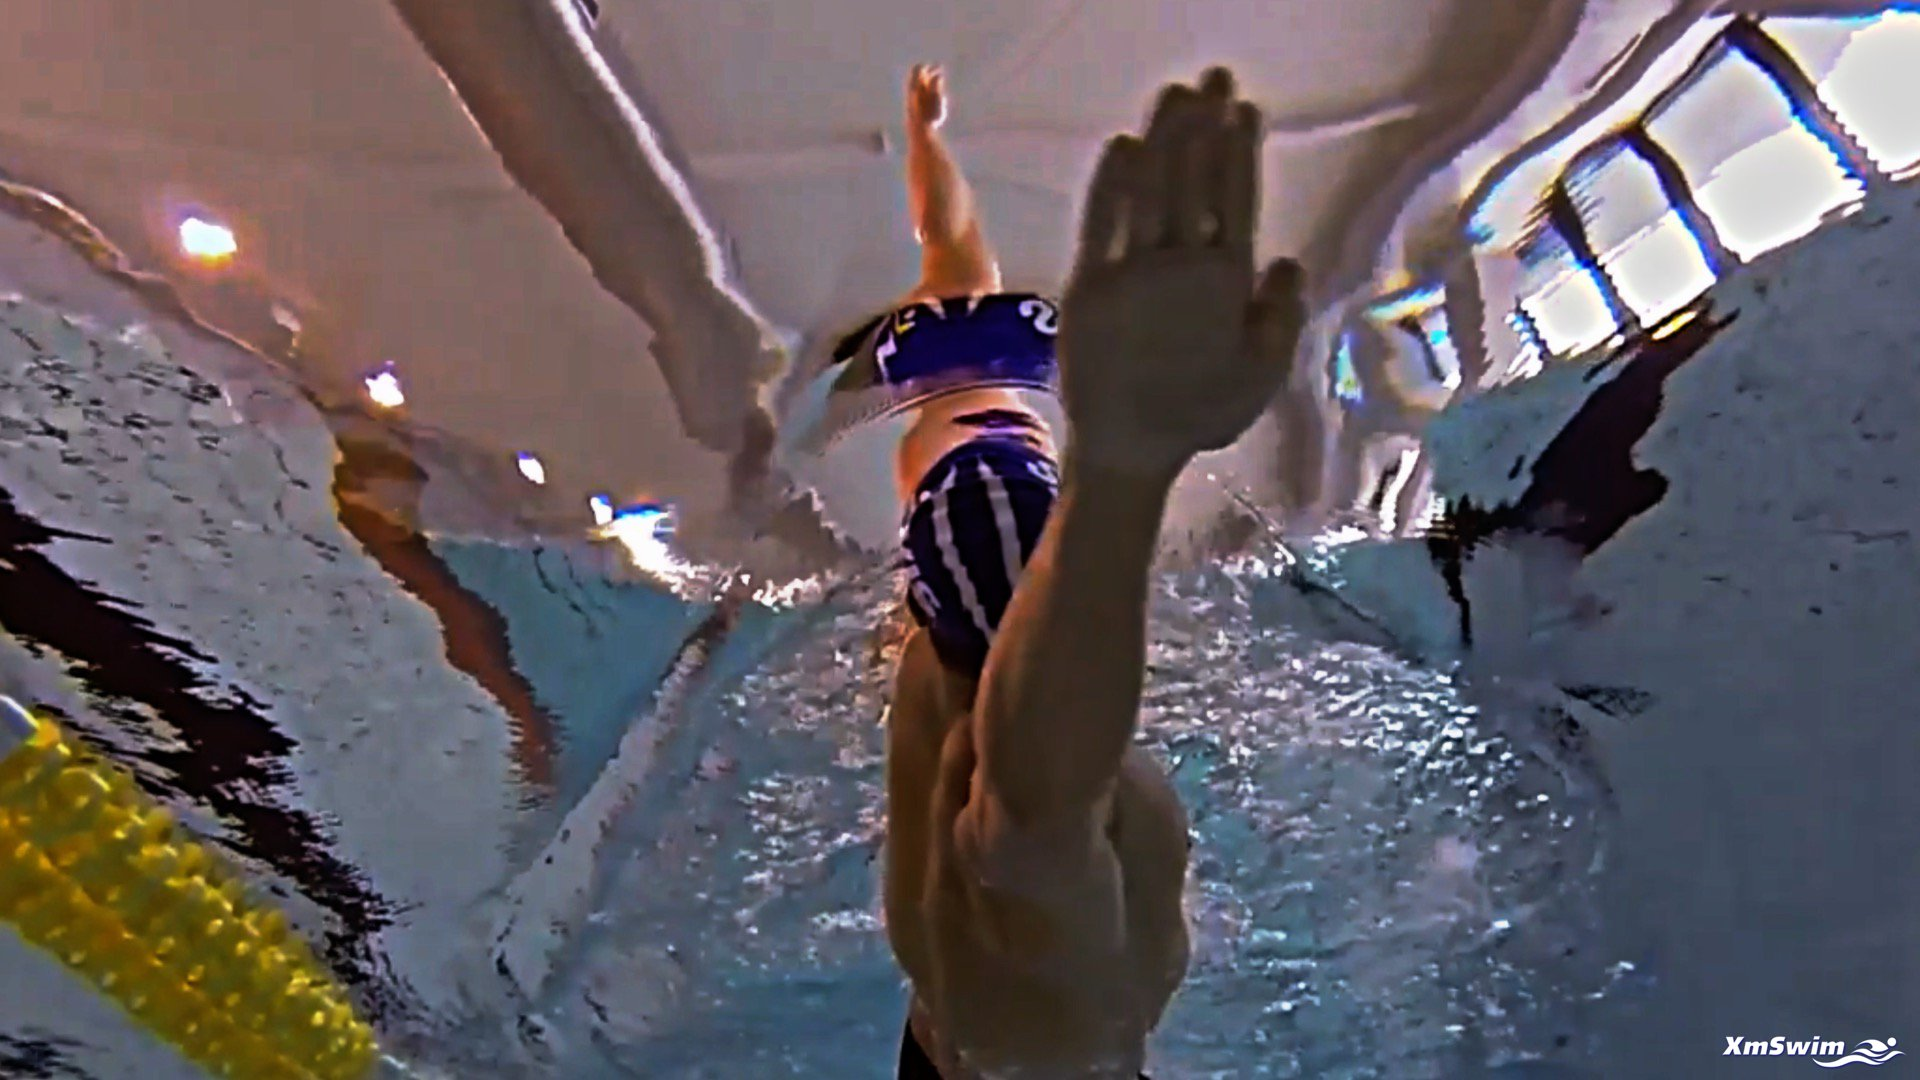 BACKSTROKE SCULL WITH TOUCH-AND-GO ARMS